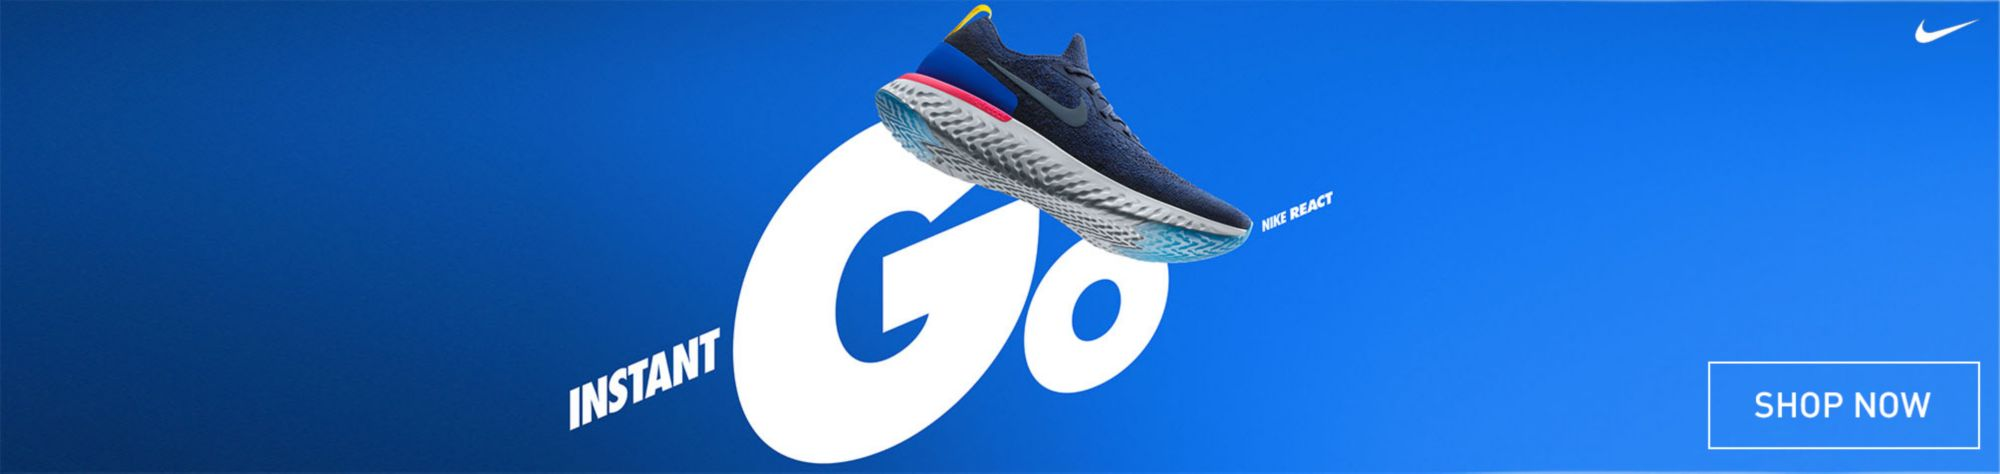 Nike Epic React Blue - Shop Now